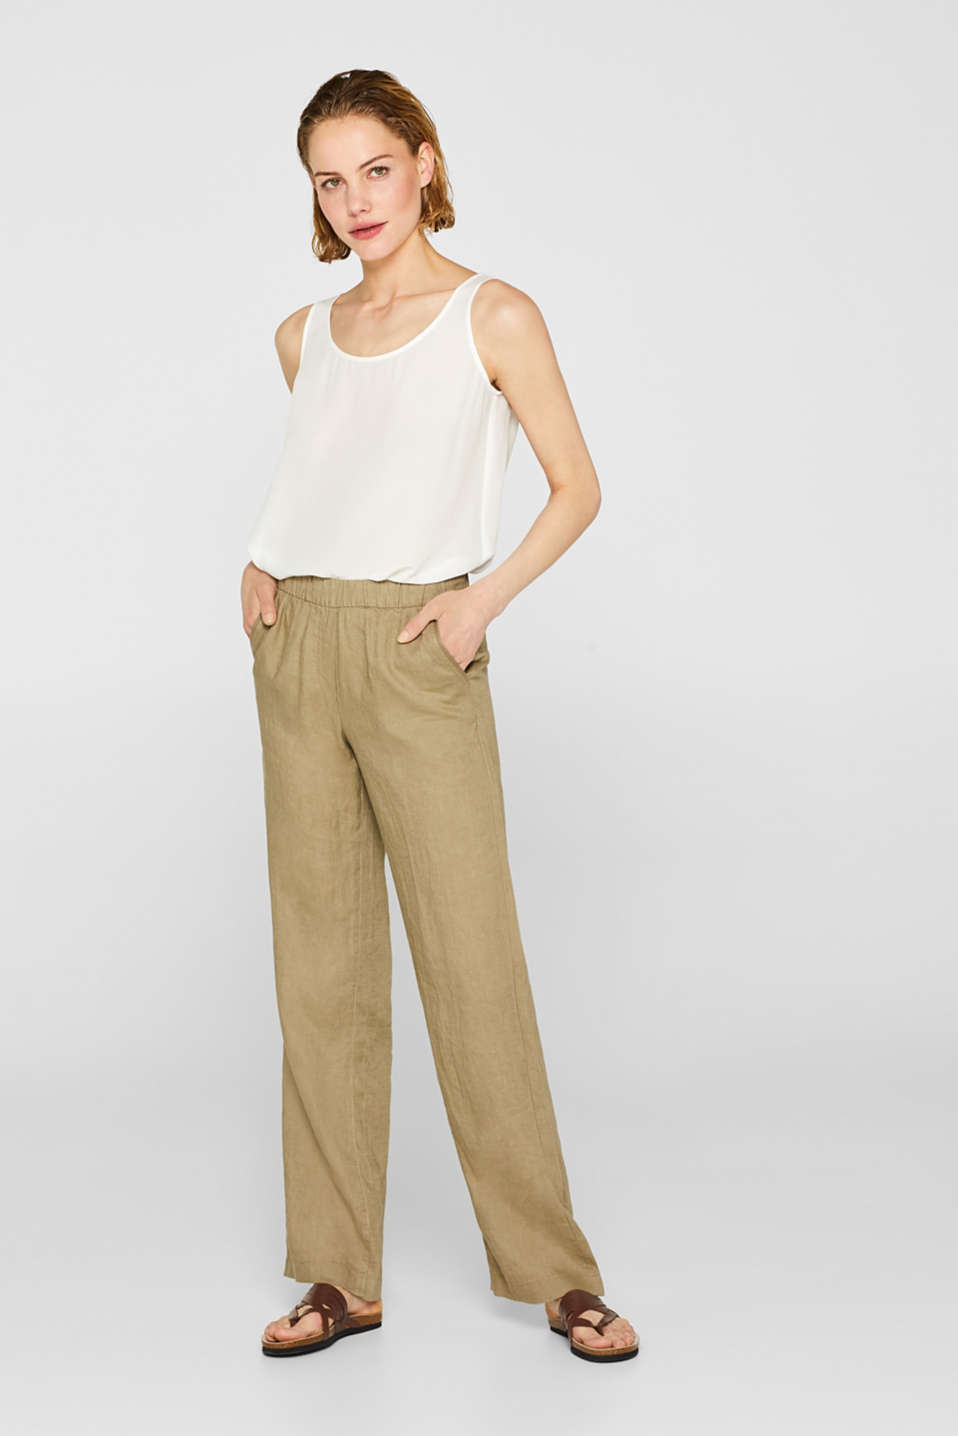 edc - Jogging bottoms in 100% linen